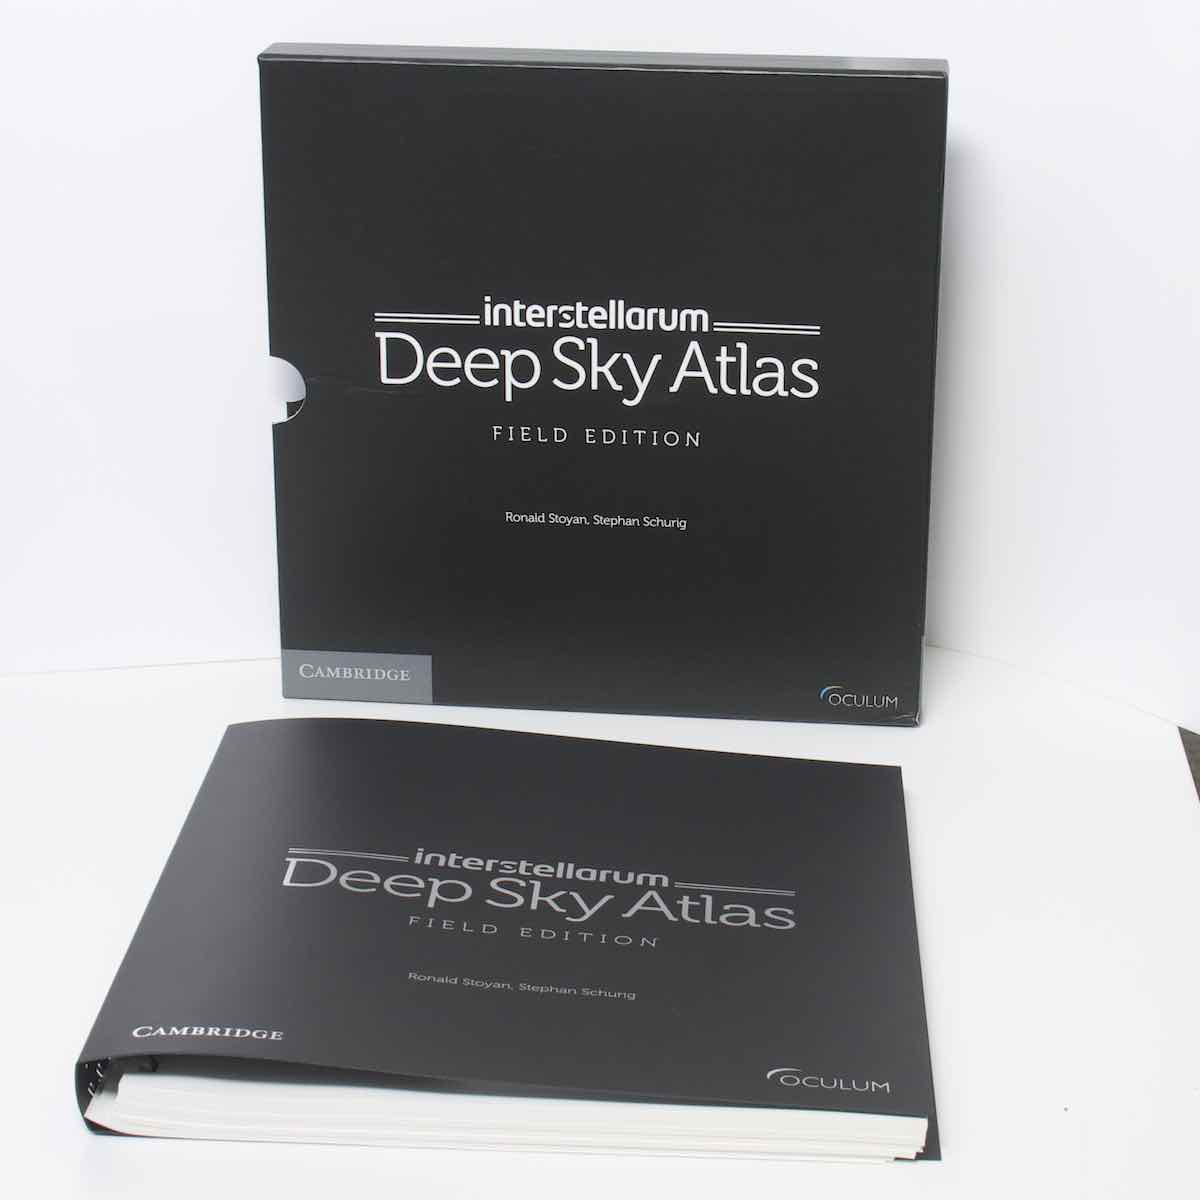 interstellarum Deep-Sky Atlas Field Edition